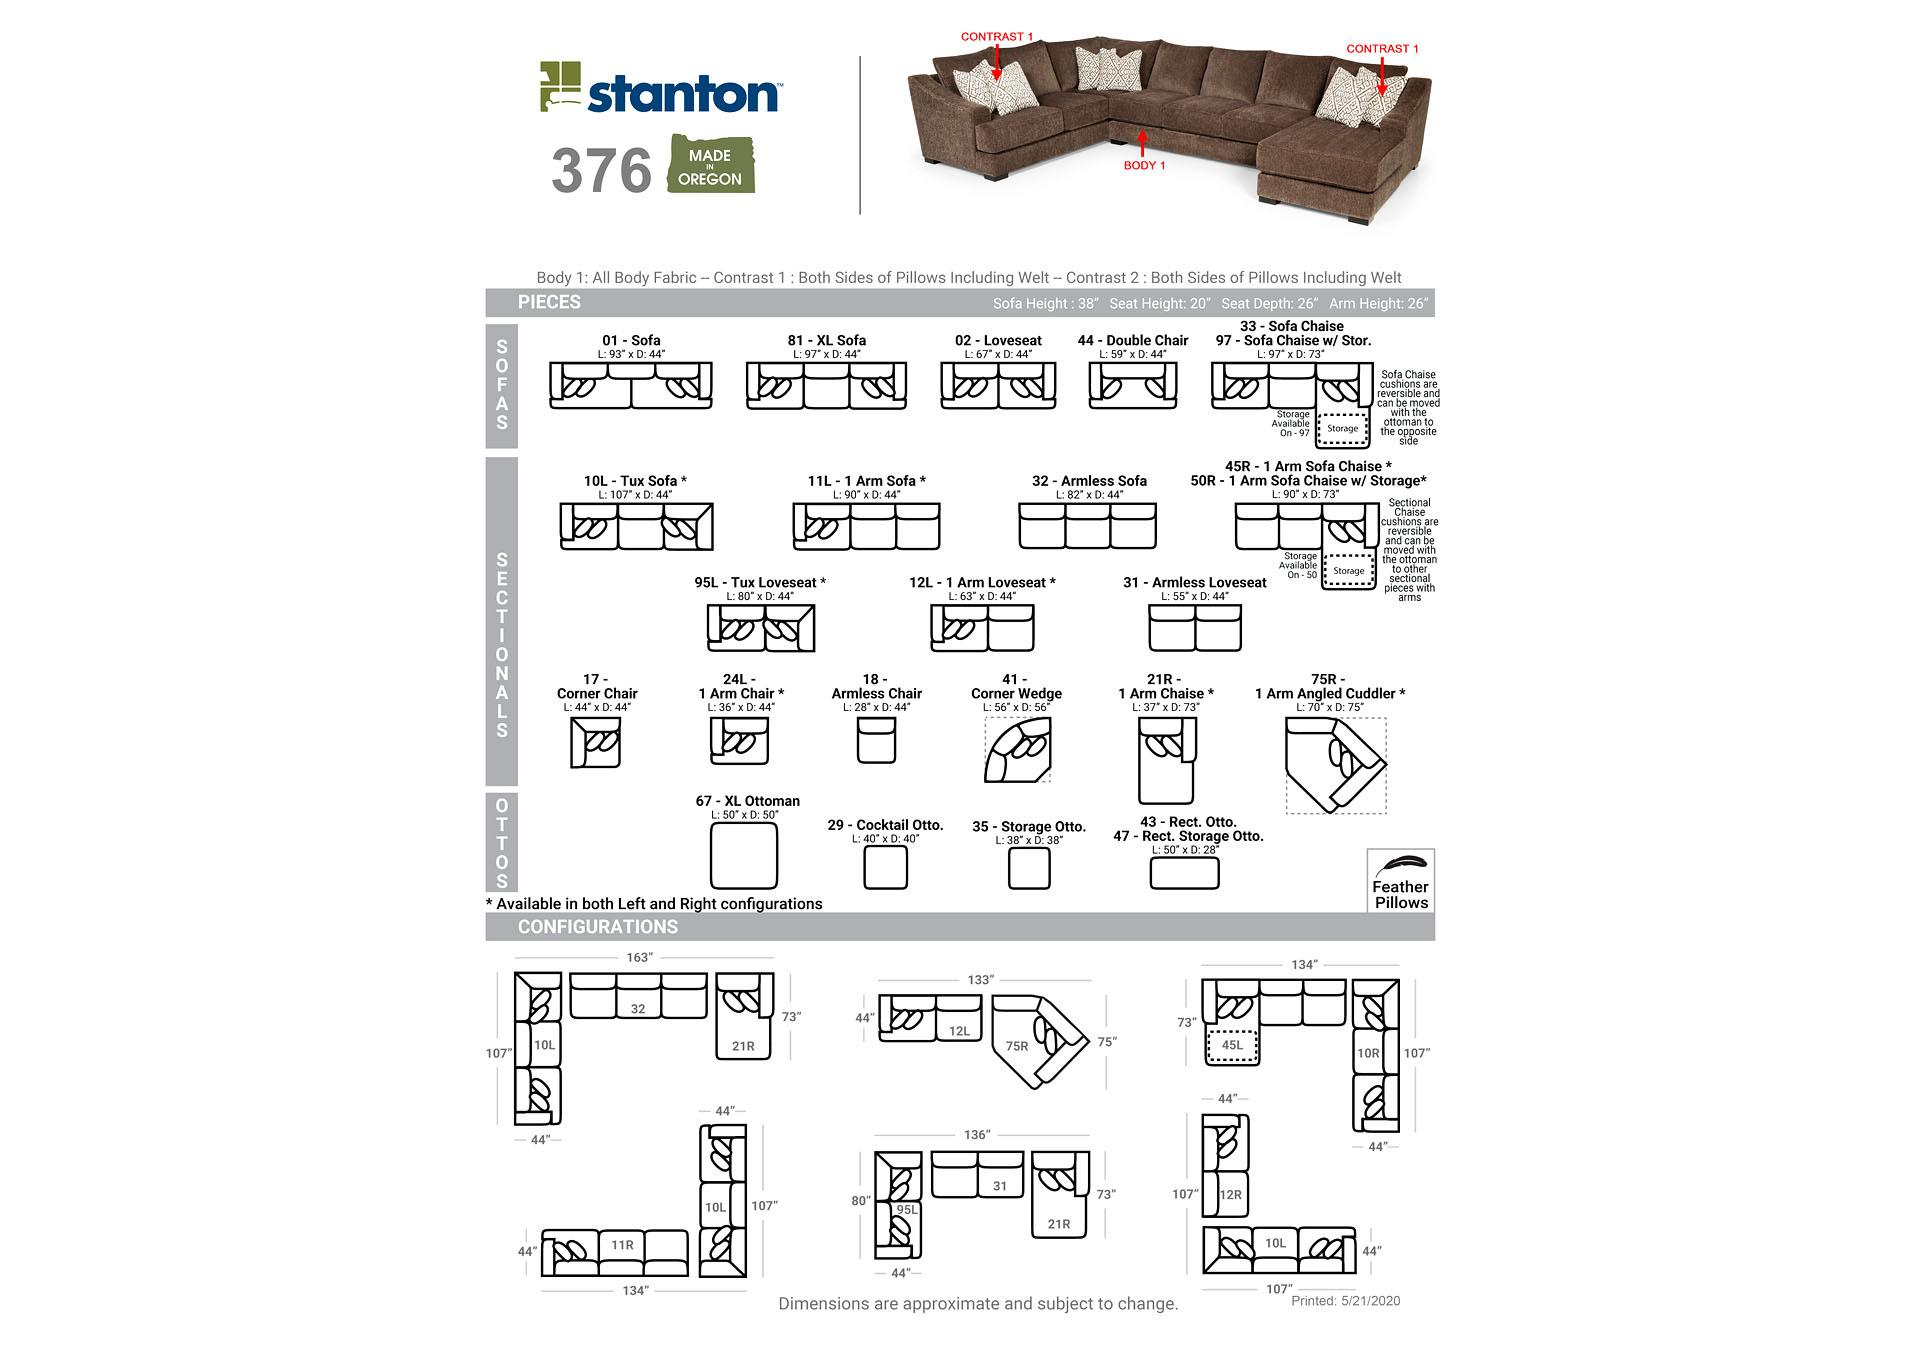 Lux Iron 3 Piece Sectional,Stanton